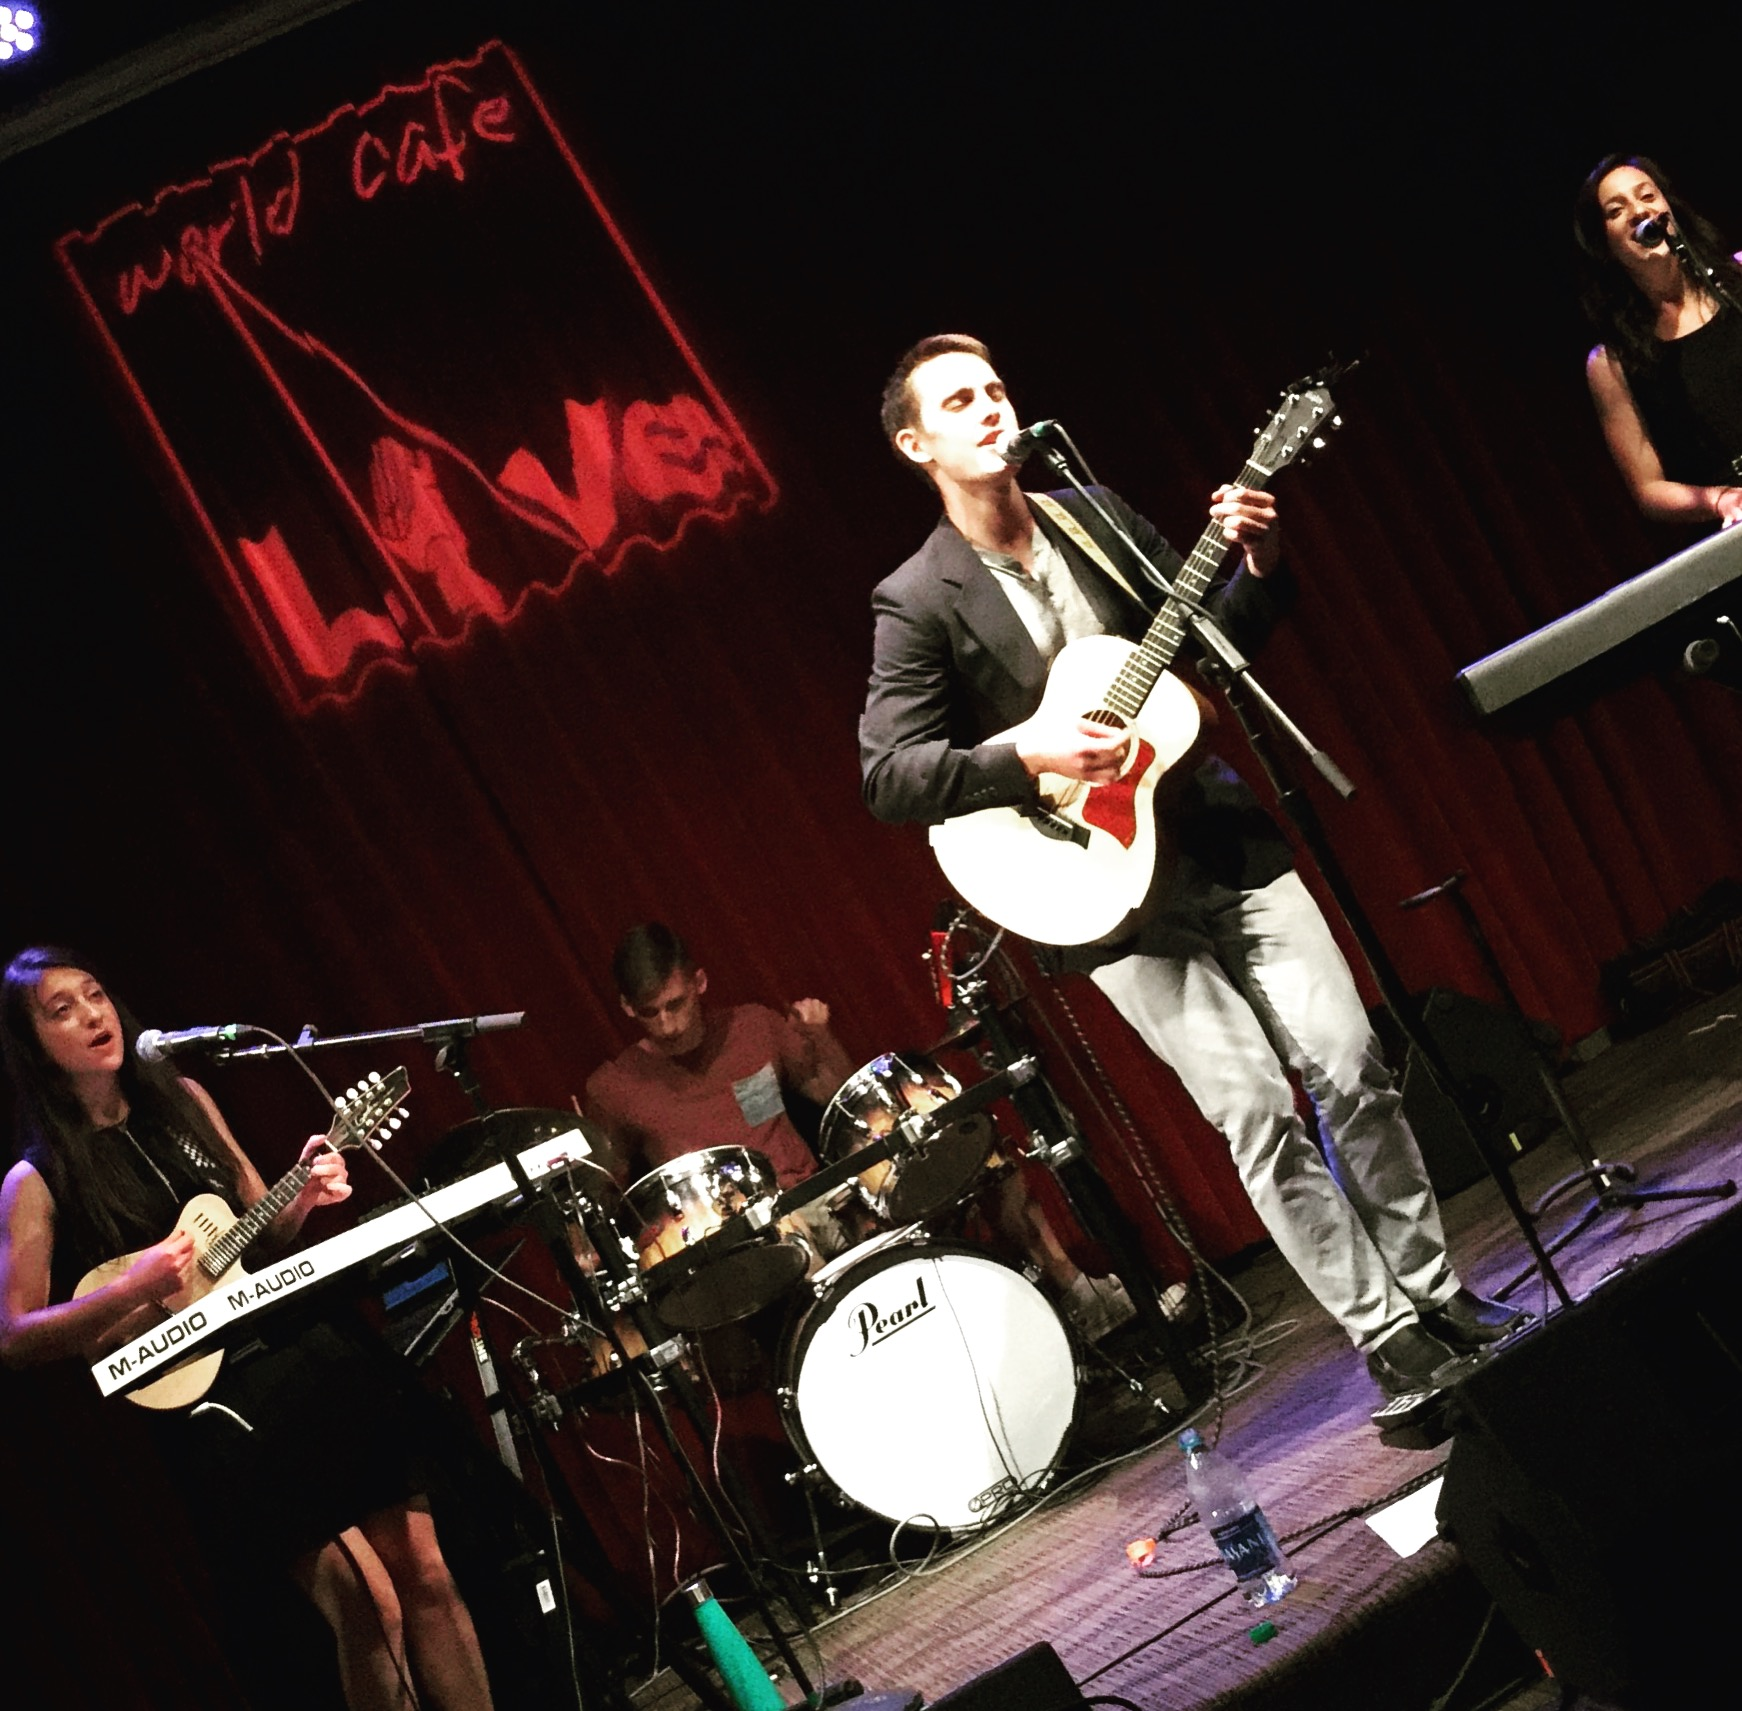 World Cafe Live in Philly